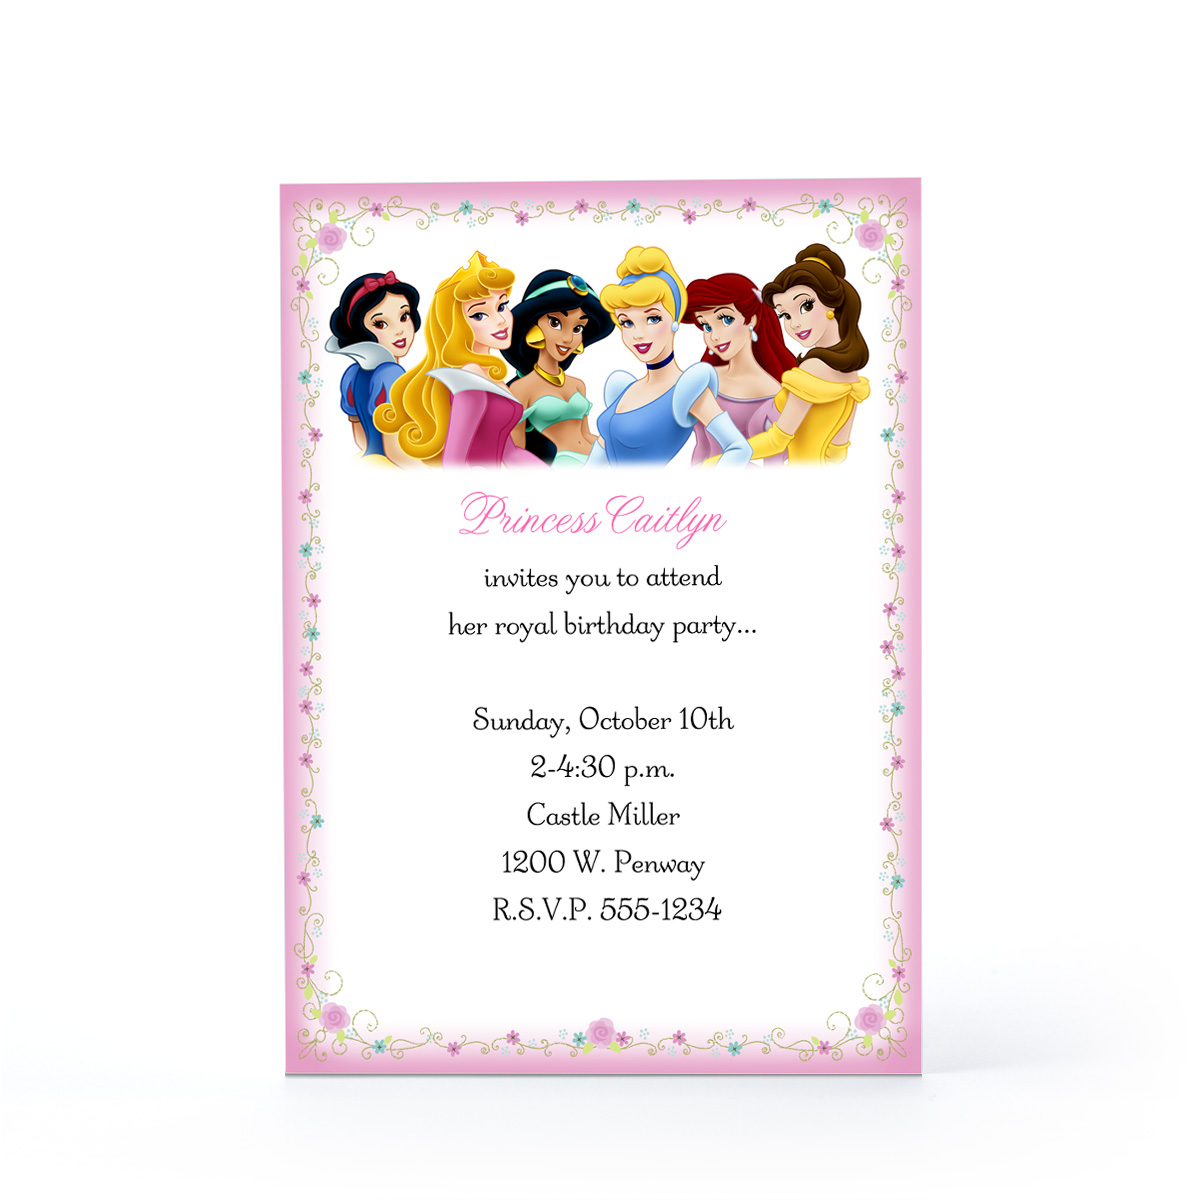 Disney Princess Birthday Invitations gangcraftnet – Disney Photo Birthday Invitations